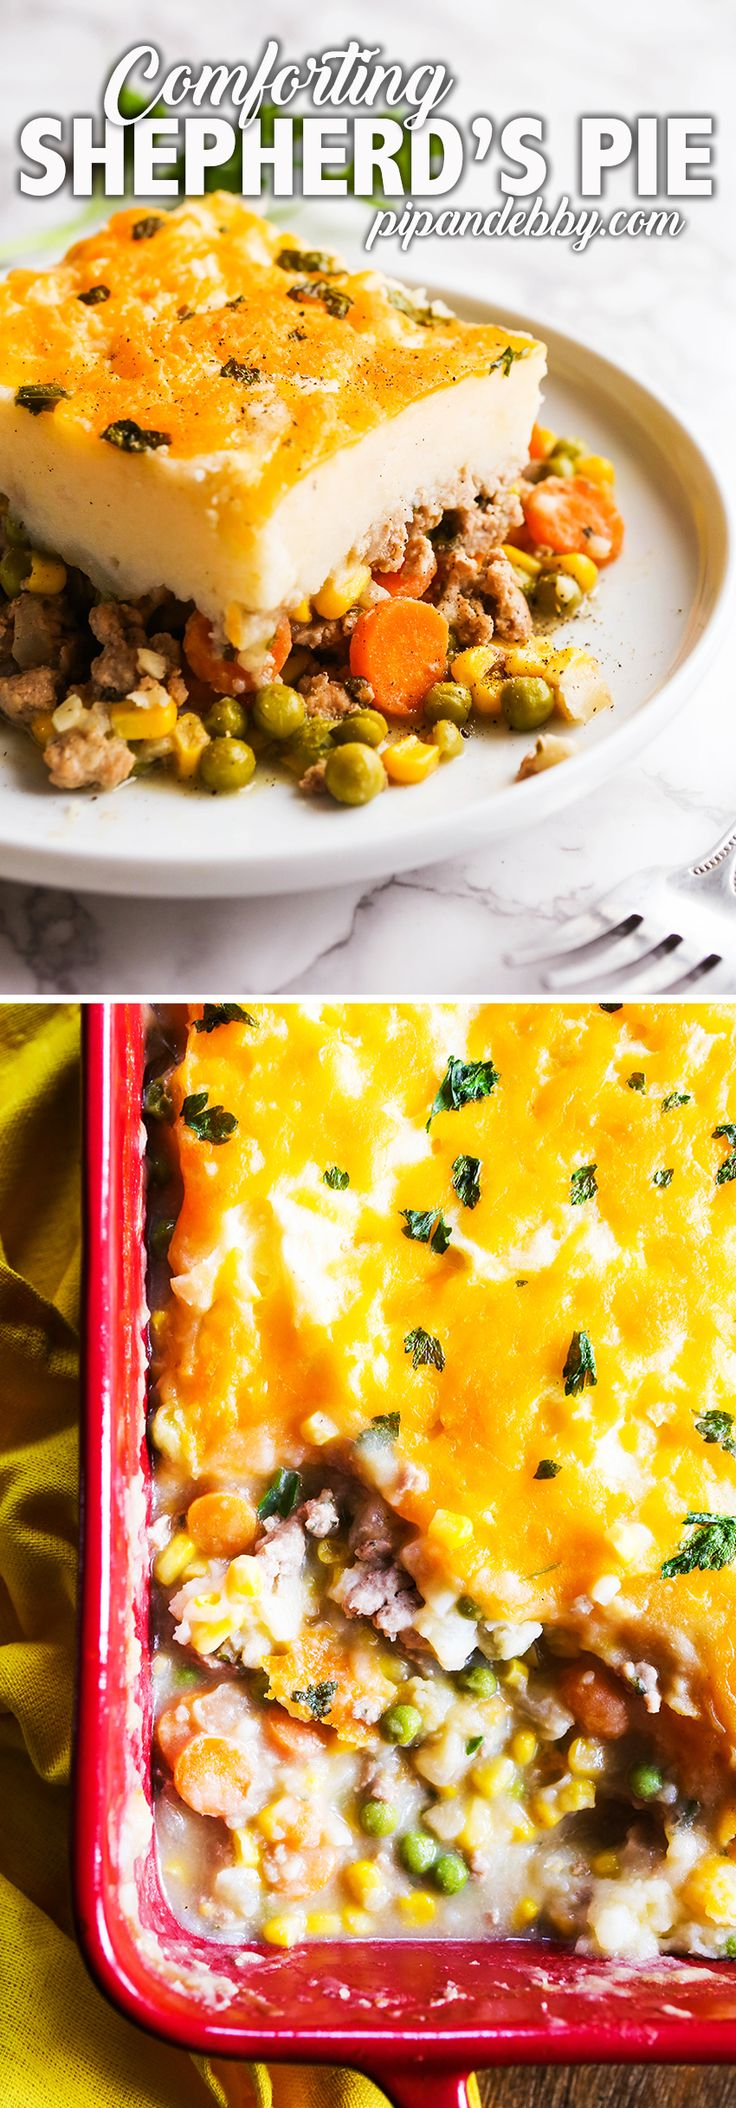 This classic, comforting Shepherd's Pie recipe will leave everyone, big and small, wanting more. A meaty, veggie-packed layer is covered by creamy, dreamy mashed potatoes and topped with melty cheese for good measure! This is a great weeknight meal and also the perfect party fare! #comfortfood #shepherdspie #dinner